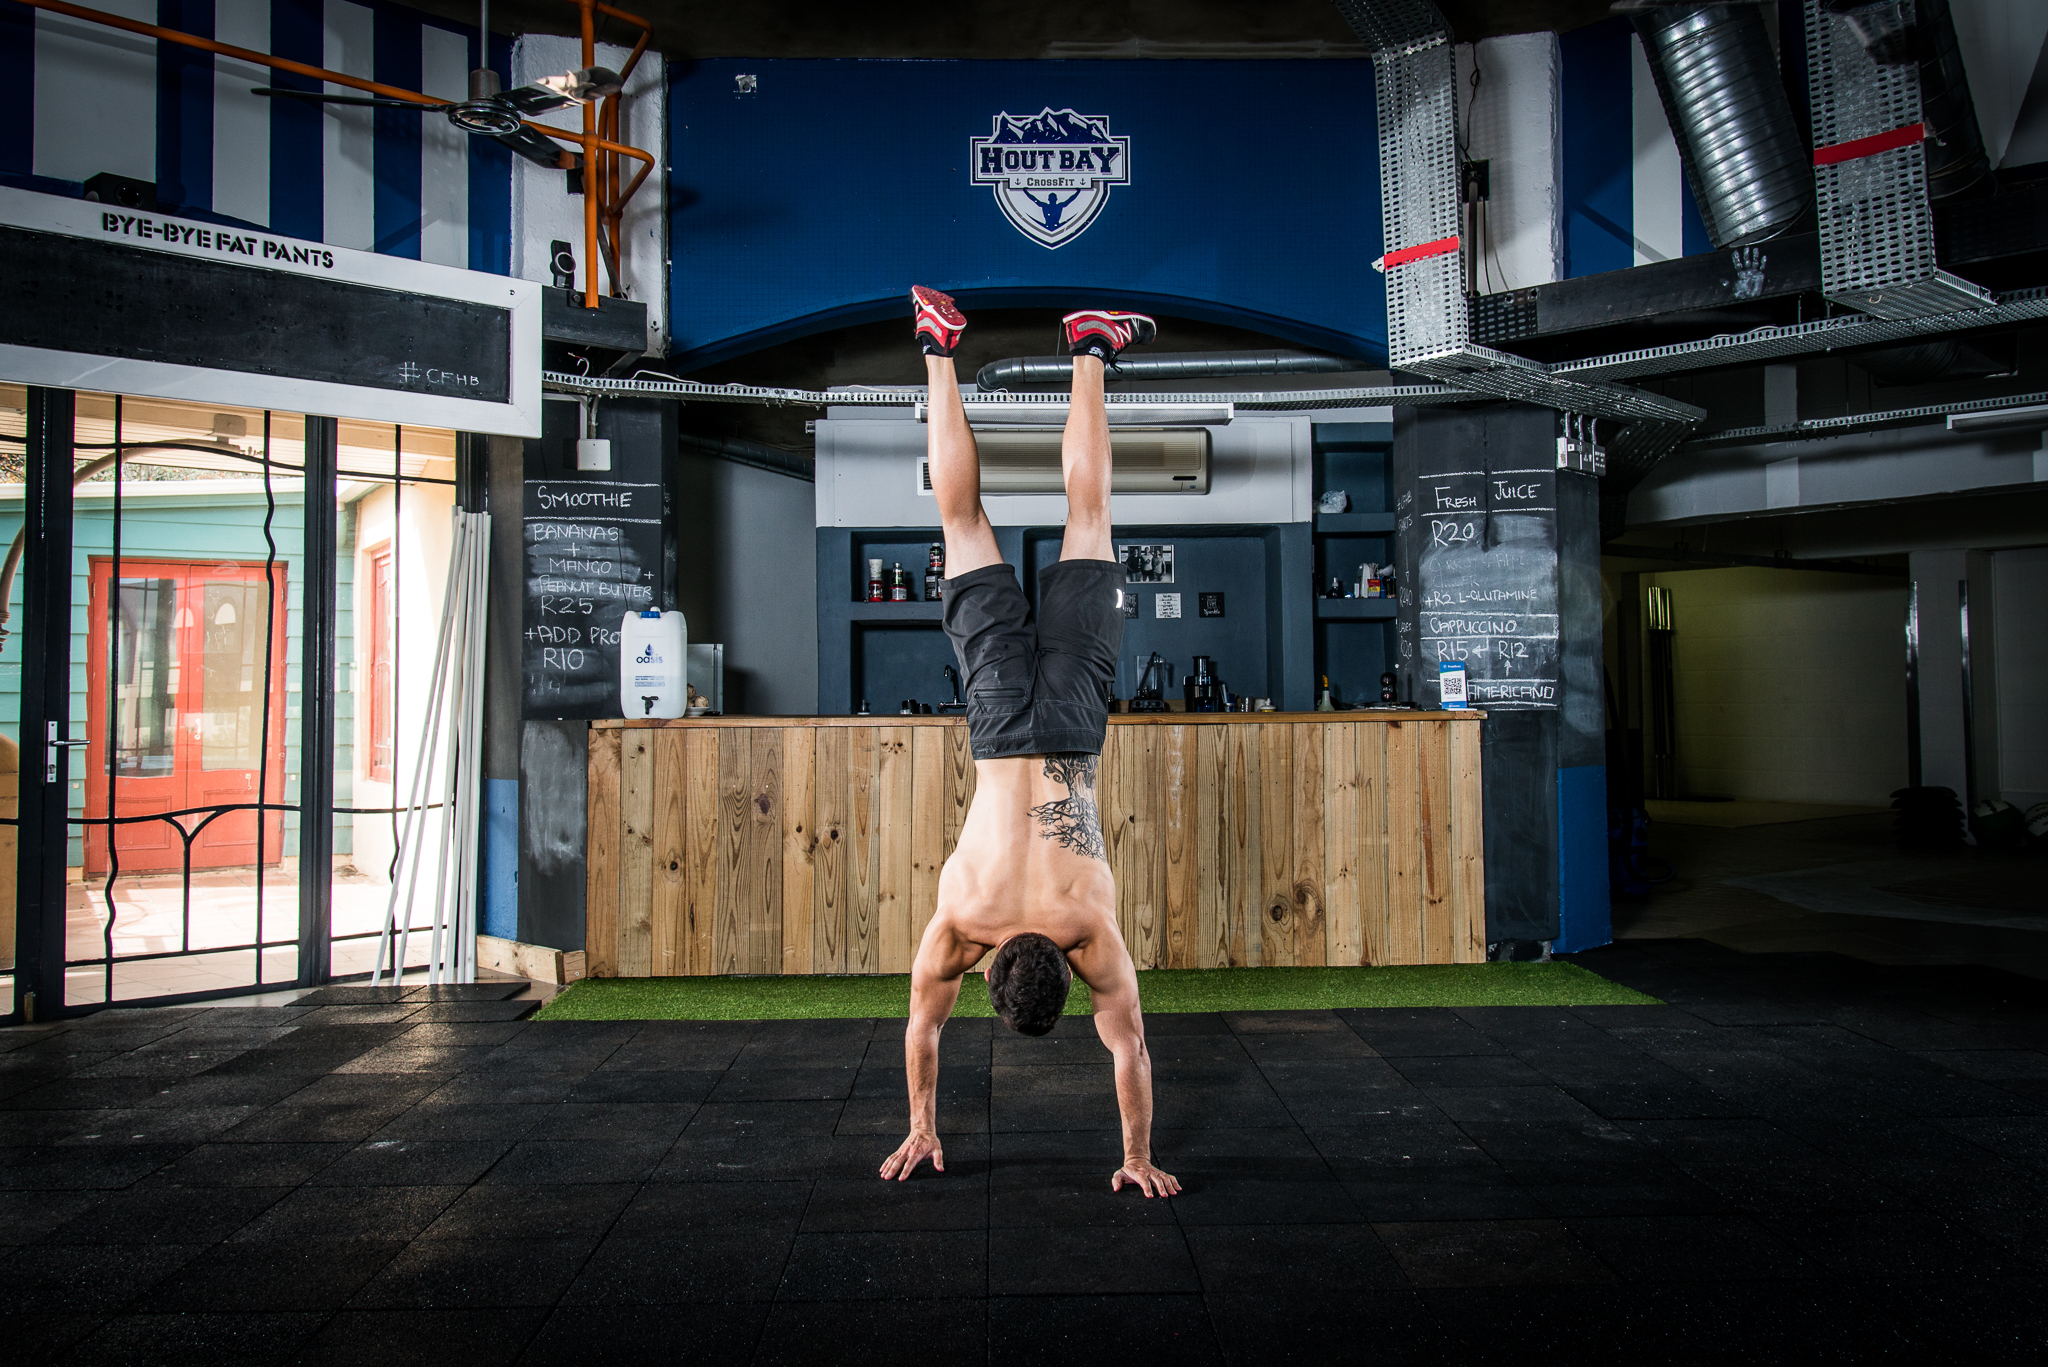 Ladies and gents, I give you the most casual, comfortable hand stander in the world.